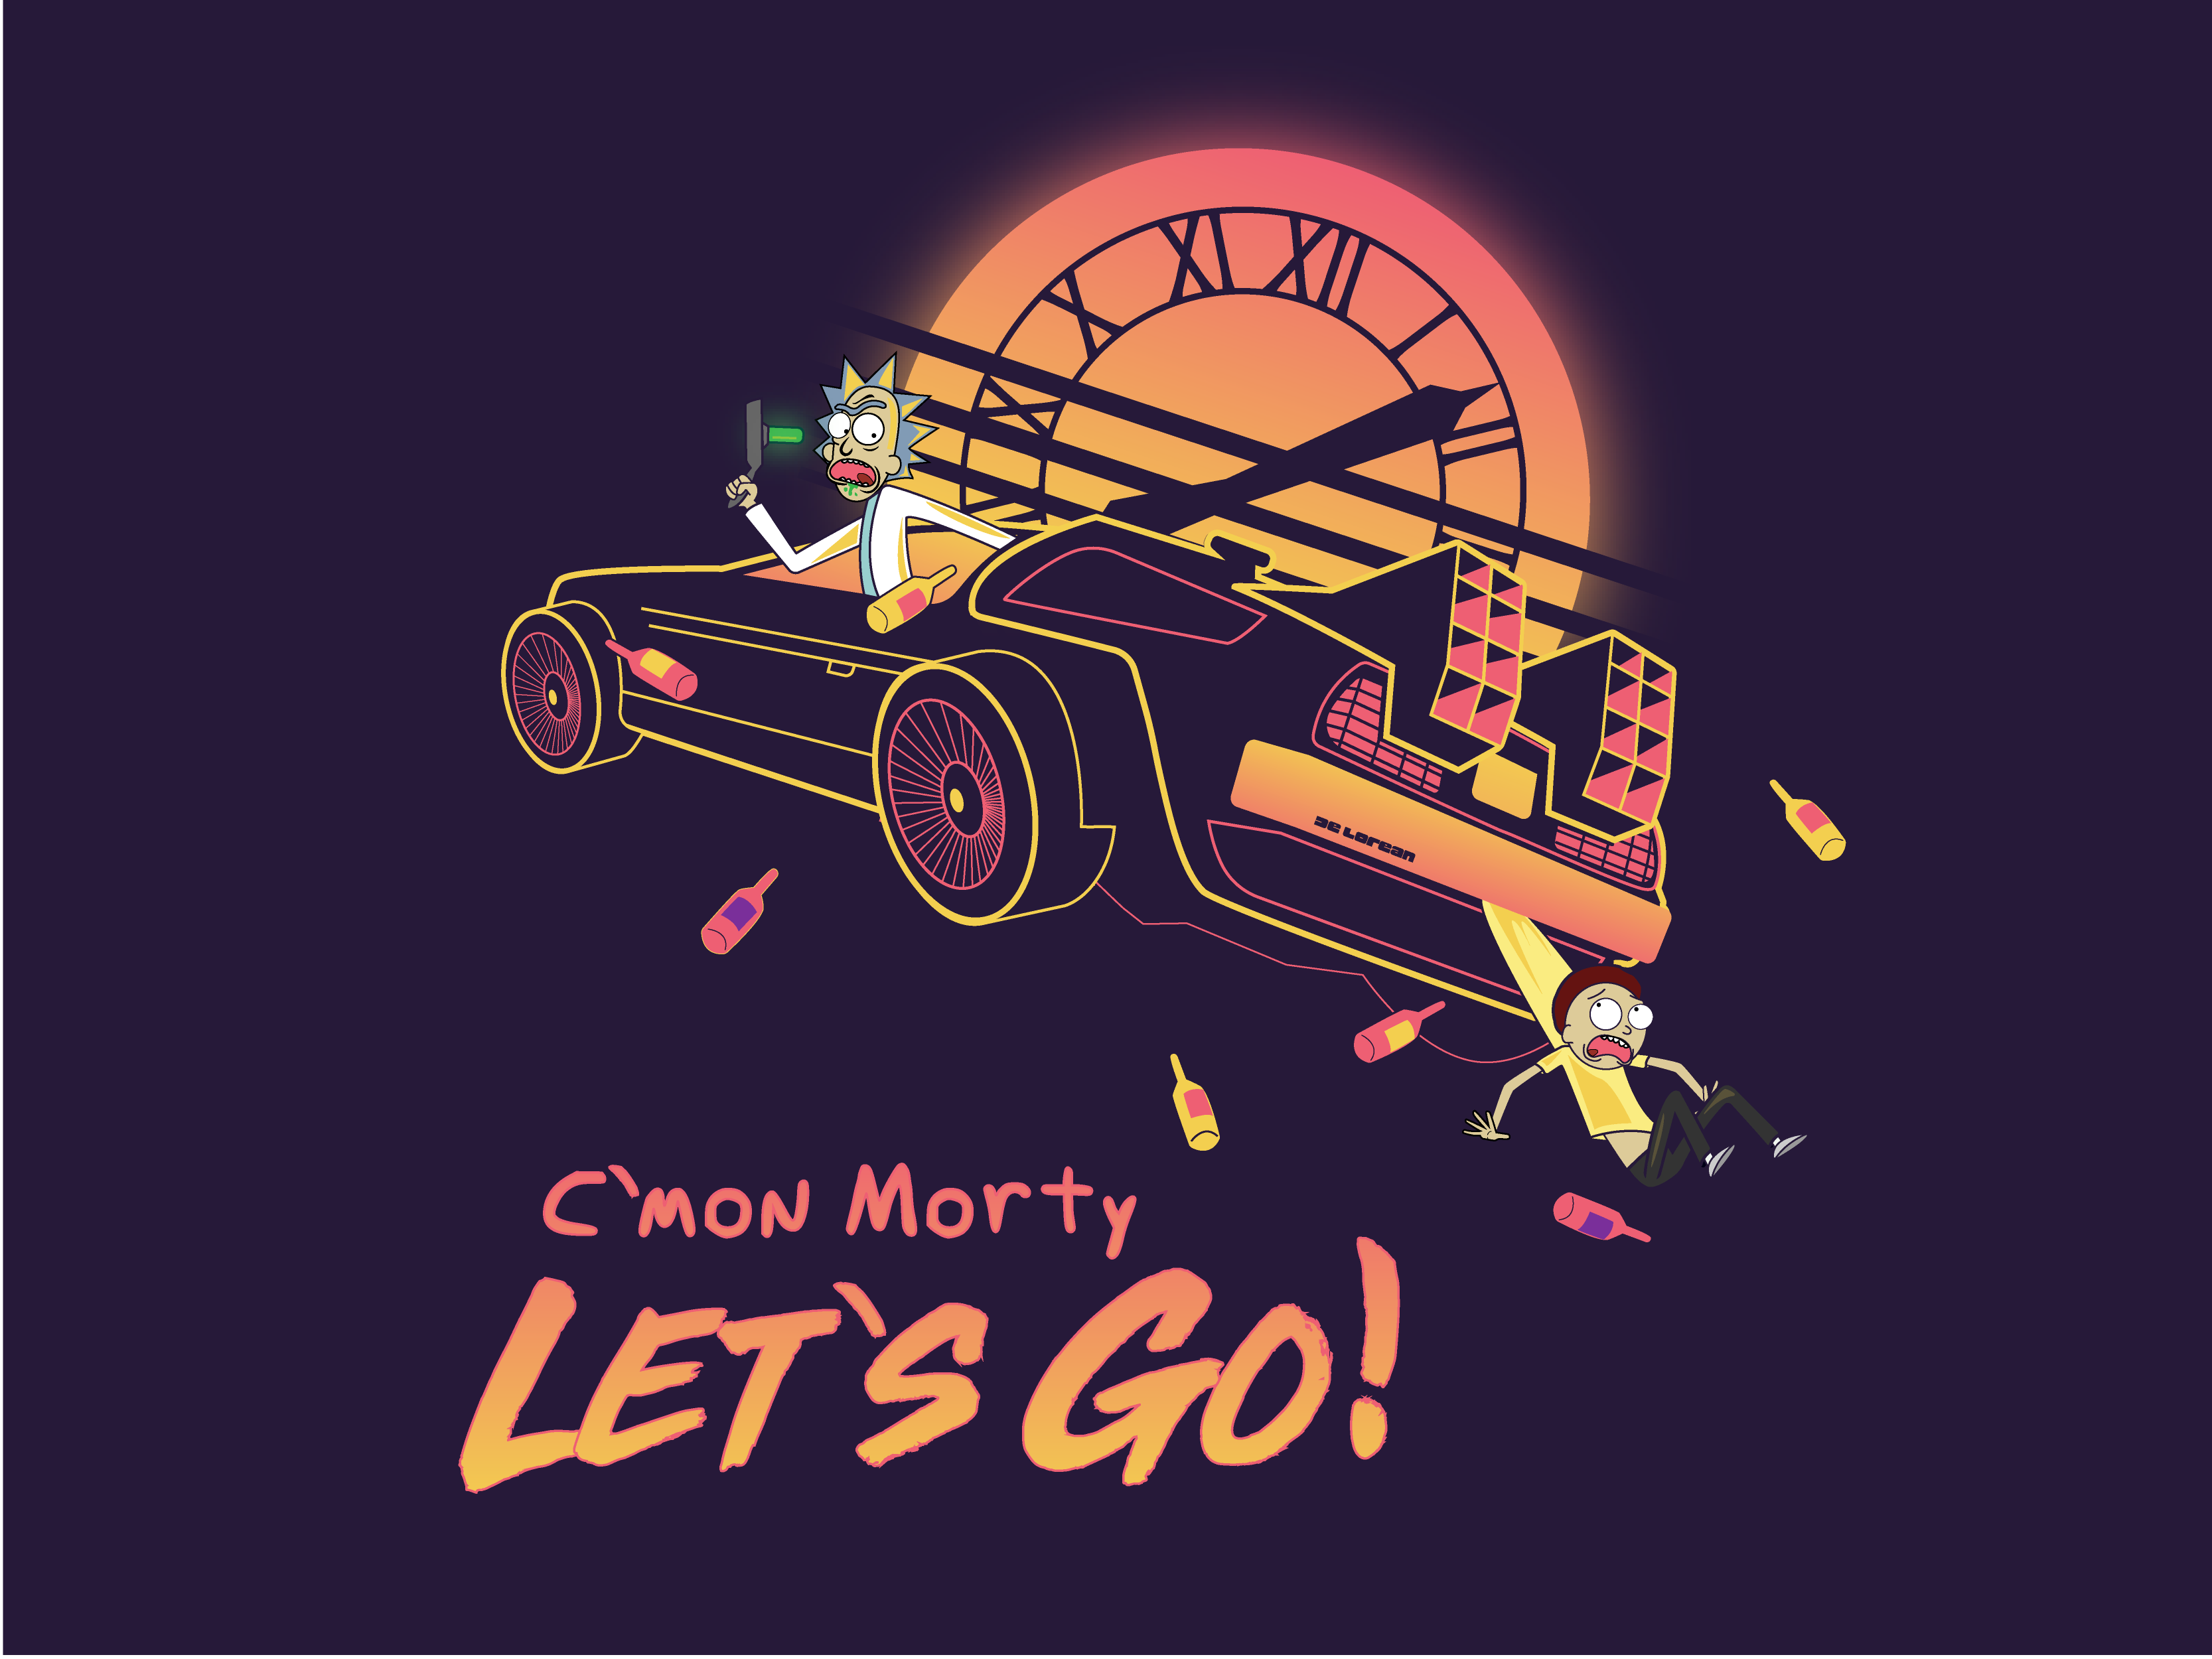 Cmon Morty Lets Go by Gary Kunkel on Dribbble 3333x2500